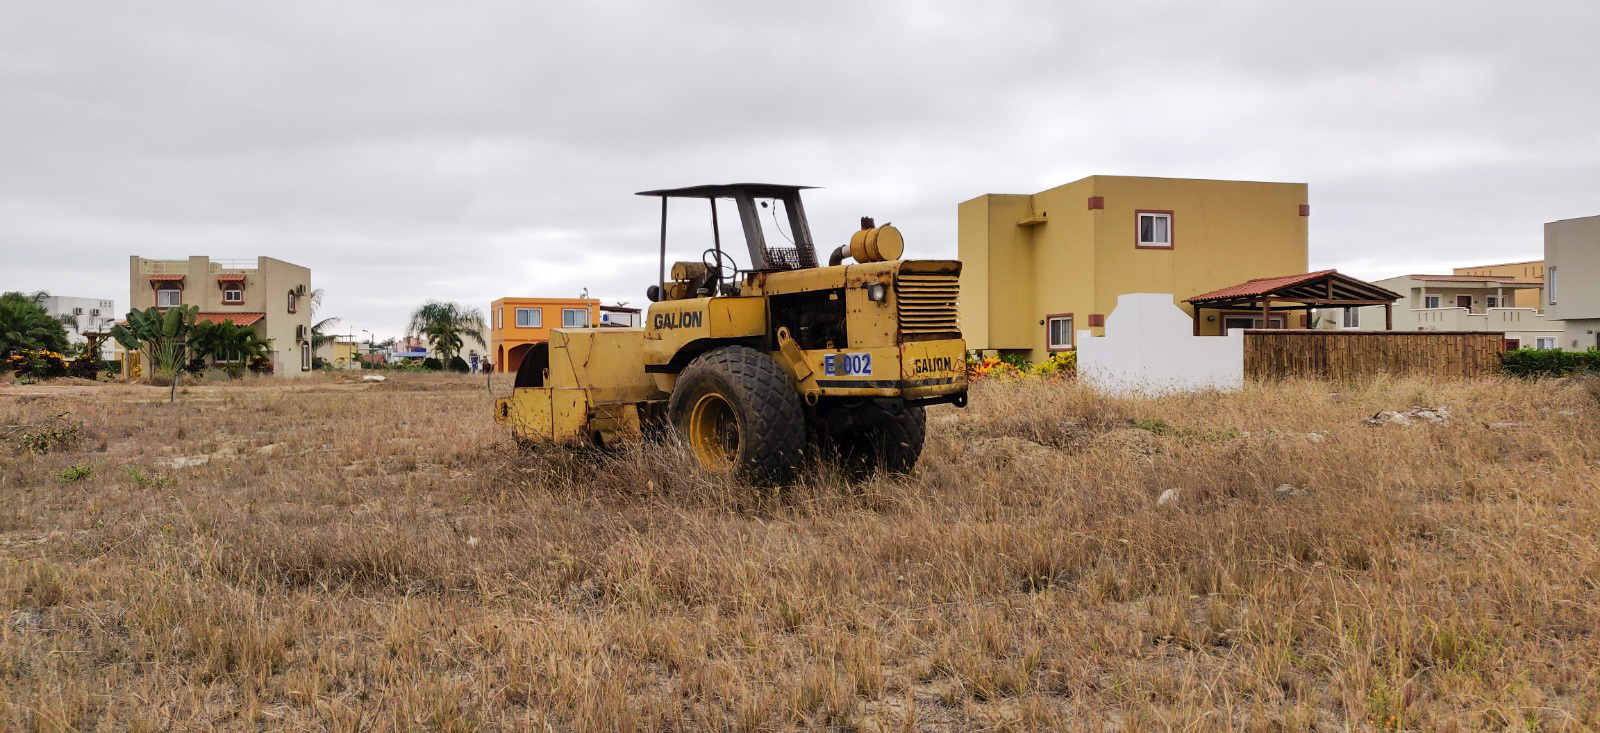 Heavy machinery left to rust in someone's undeveloped lot